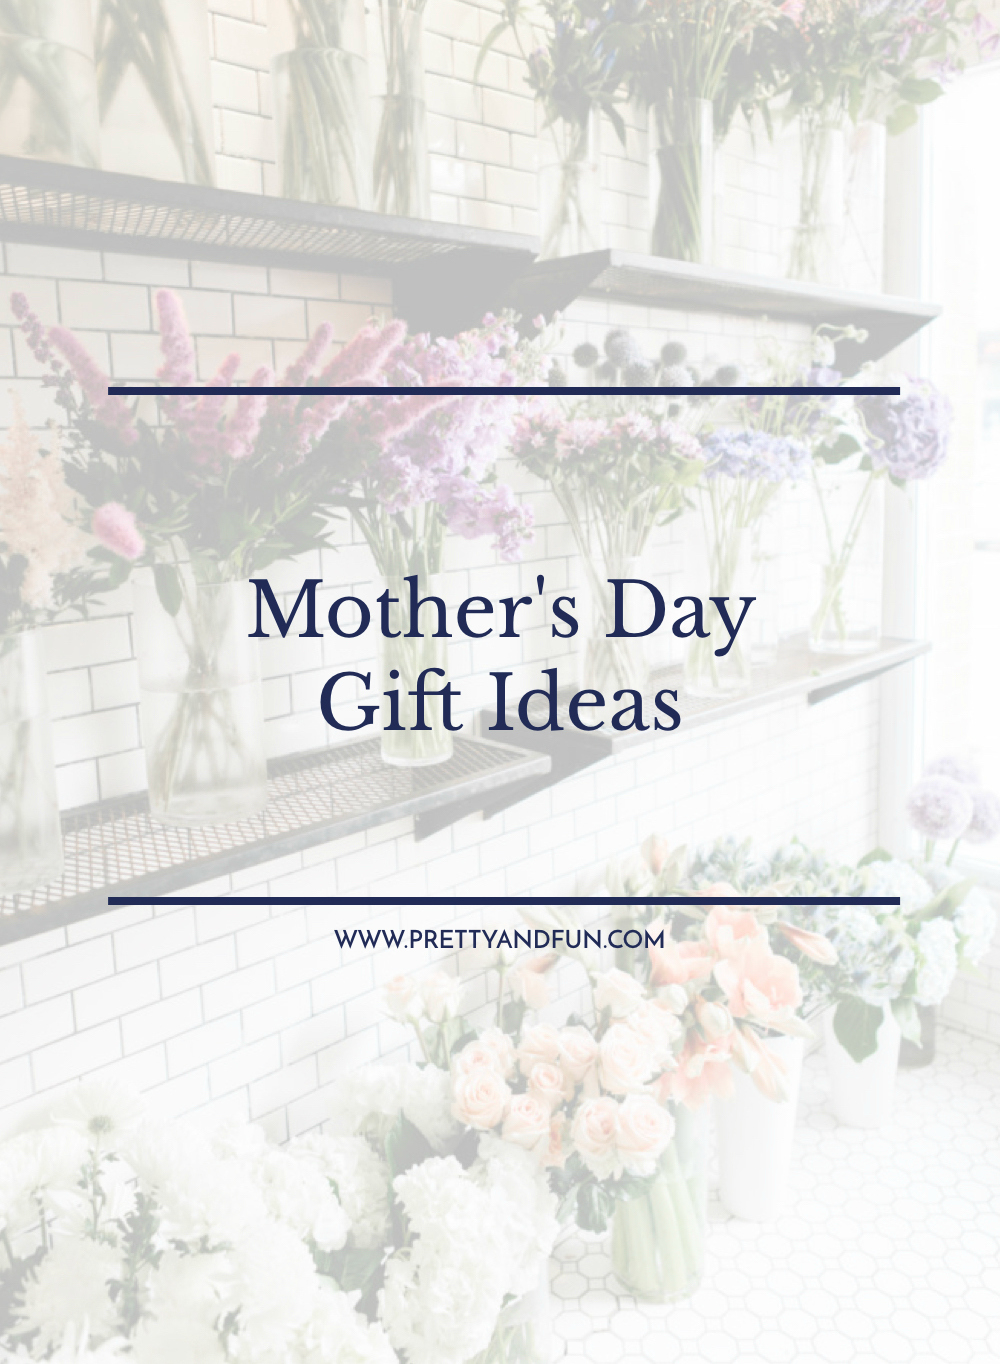 Mother's Day Gift Ideas.